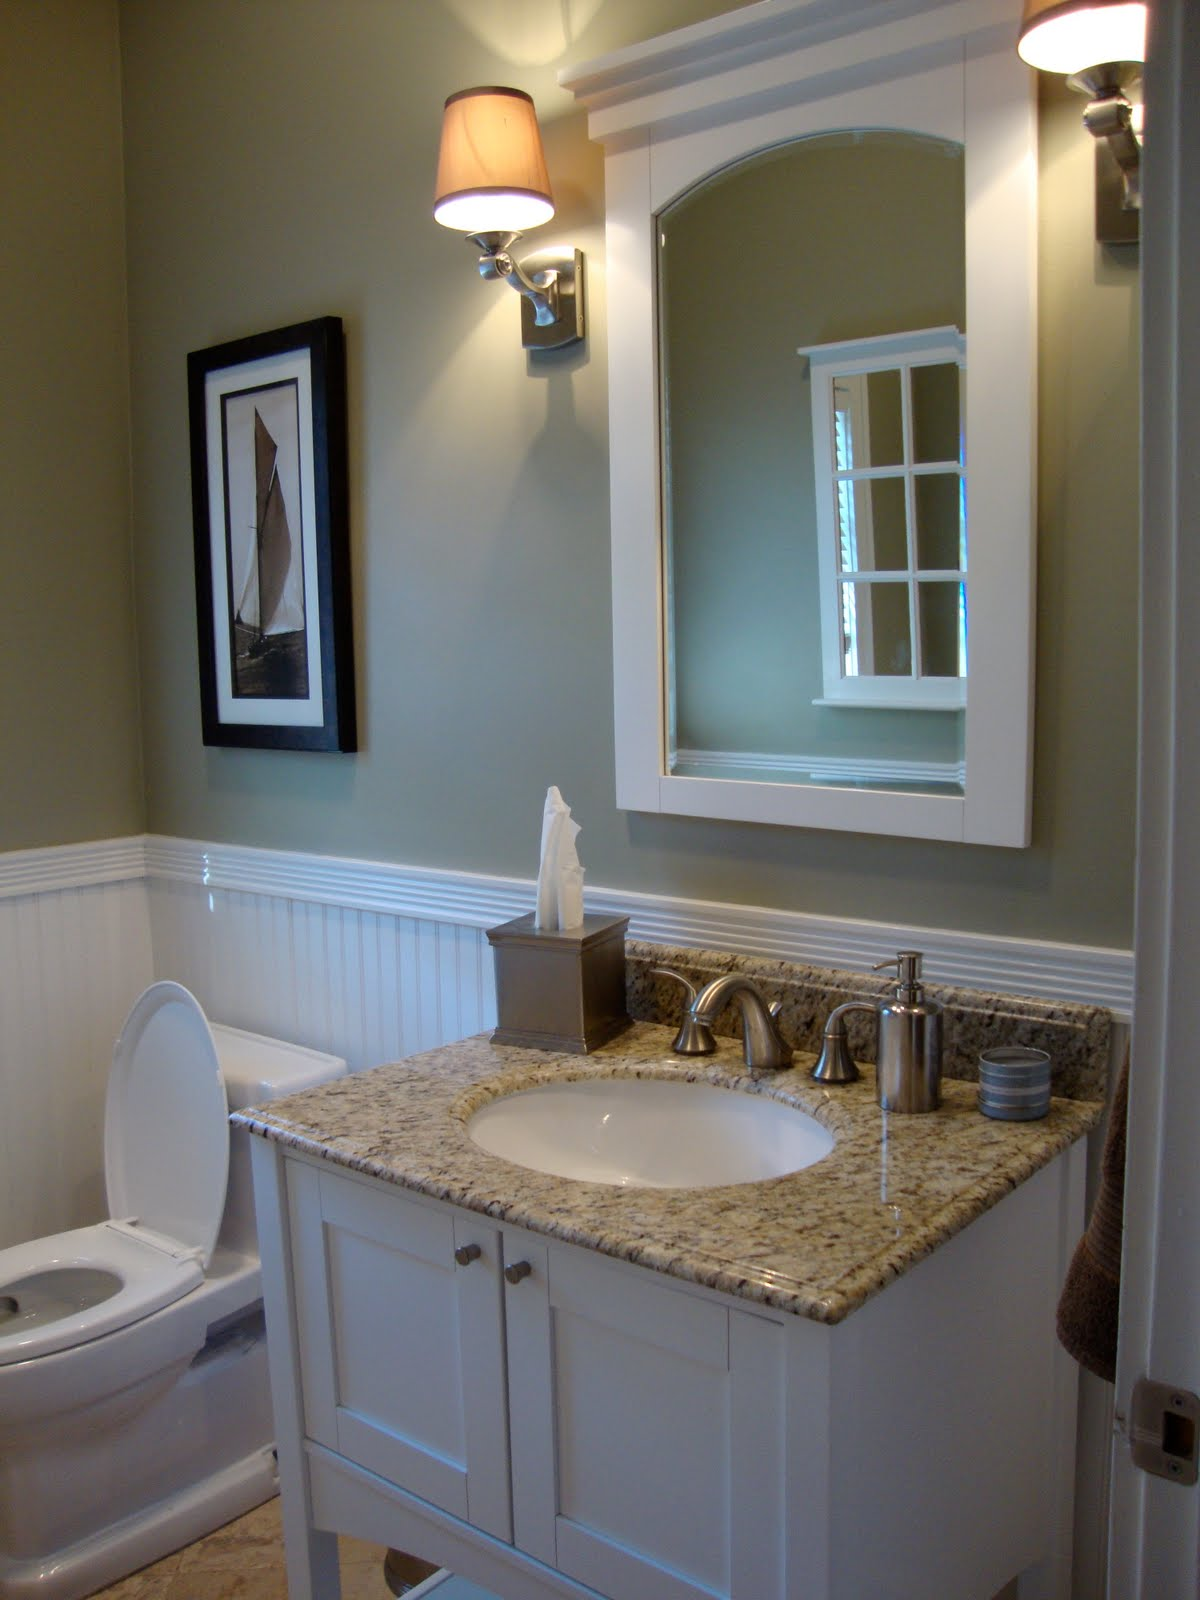 104 Ways To Make A House A Home Downstairs Bathroom